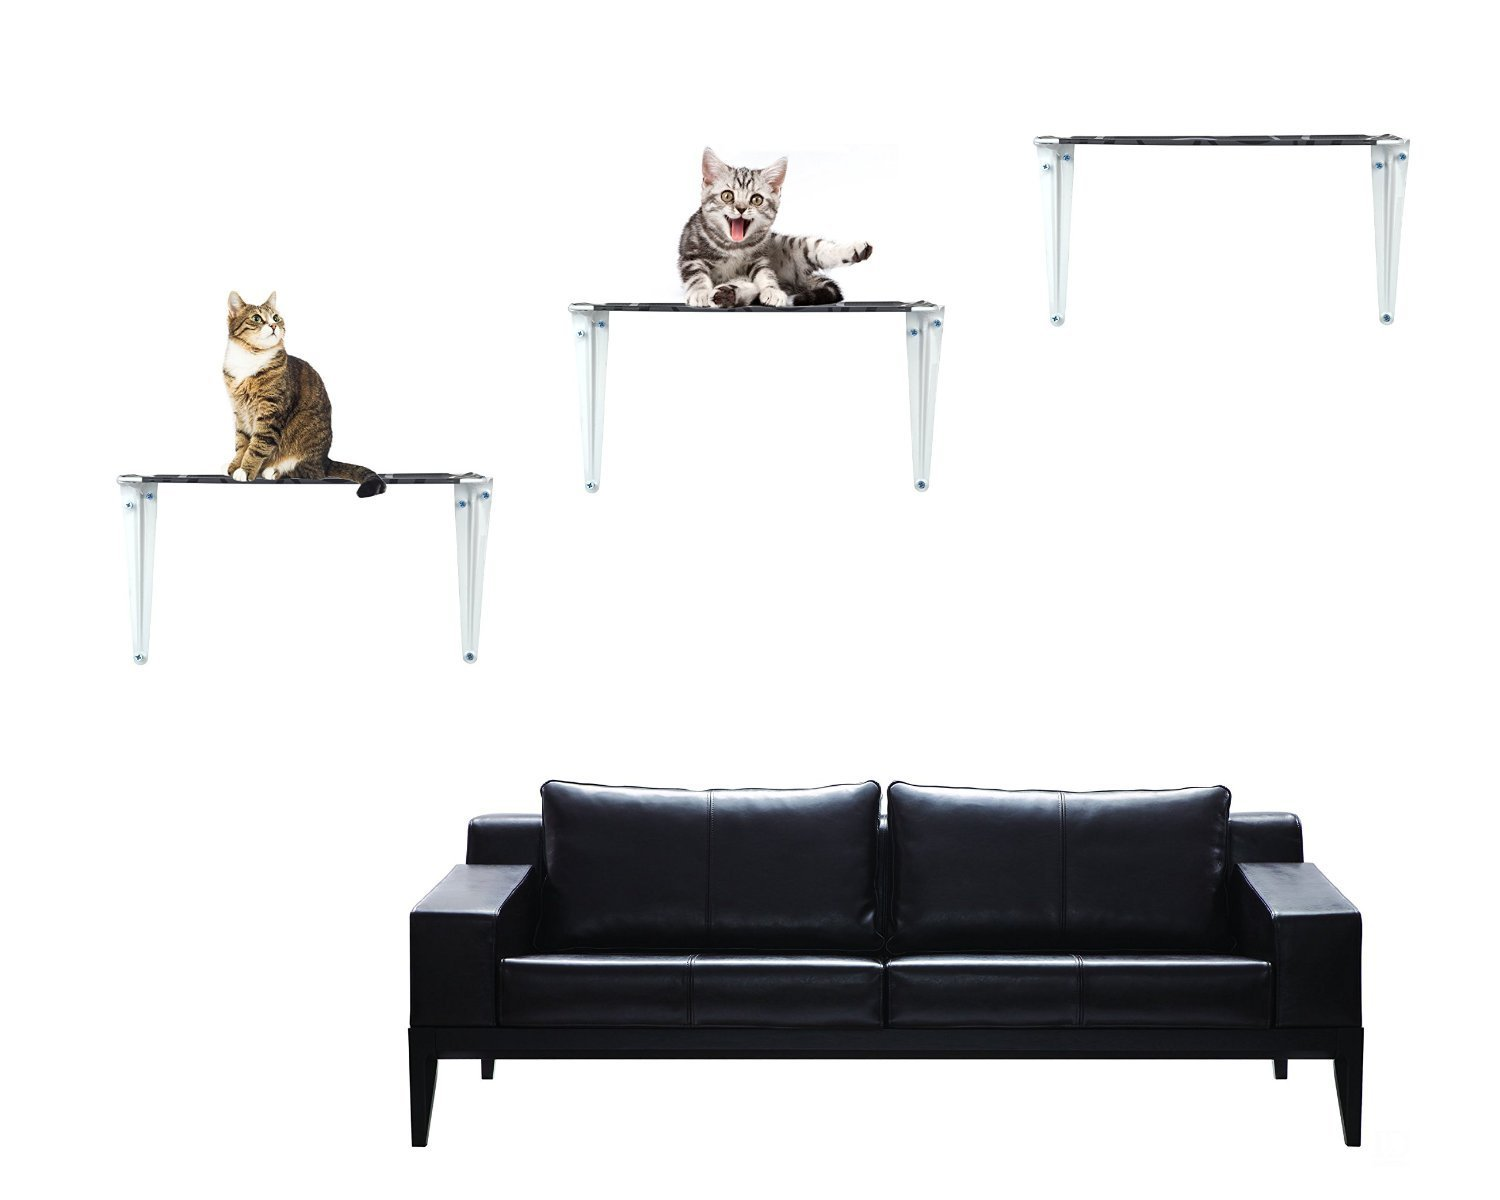 Amazon raycc cat shelves cat tree cat wall shelves for amazon raycc cat shelves cat tree cat wall shelves for climbing sleeping and exercisingset of 3 small pet supplies amipublicfo Image collections